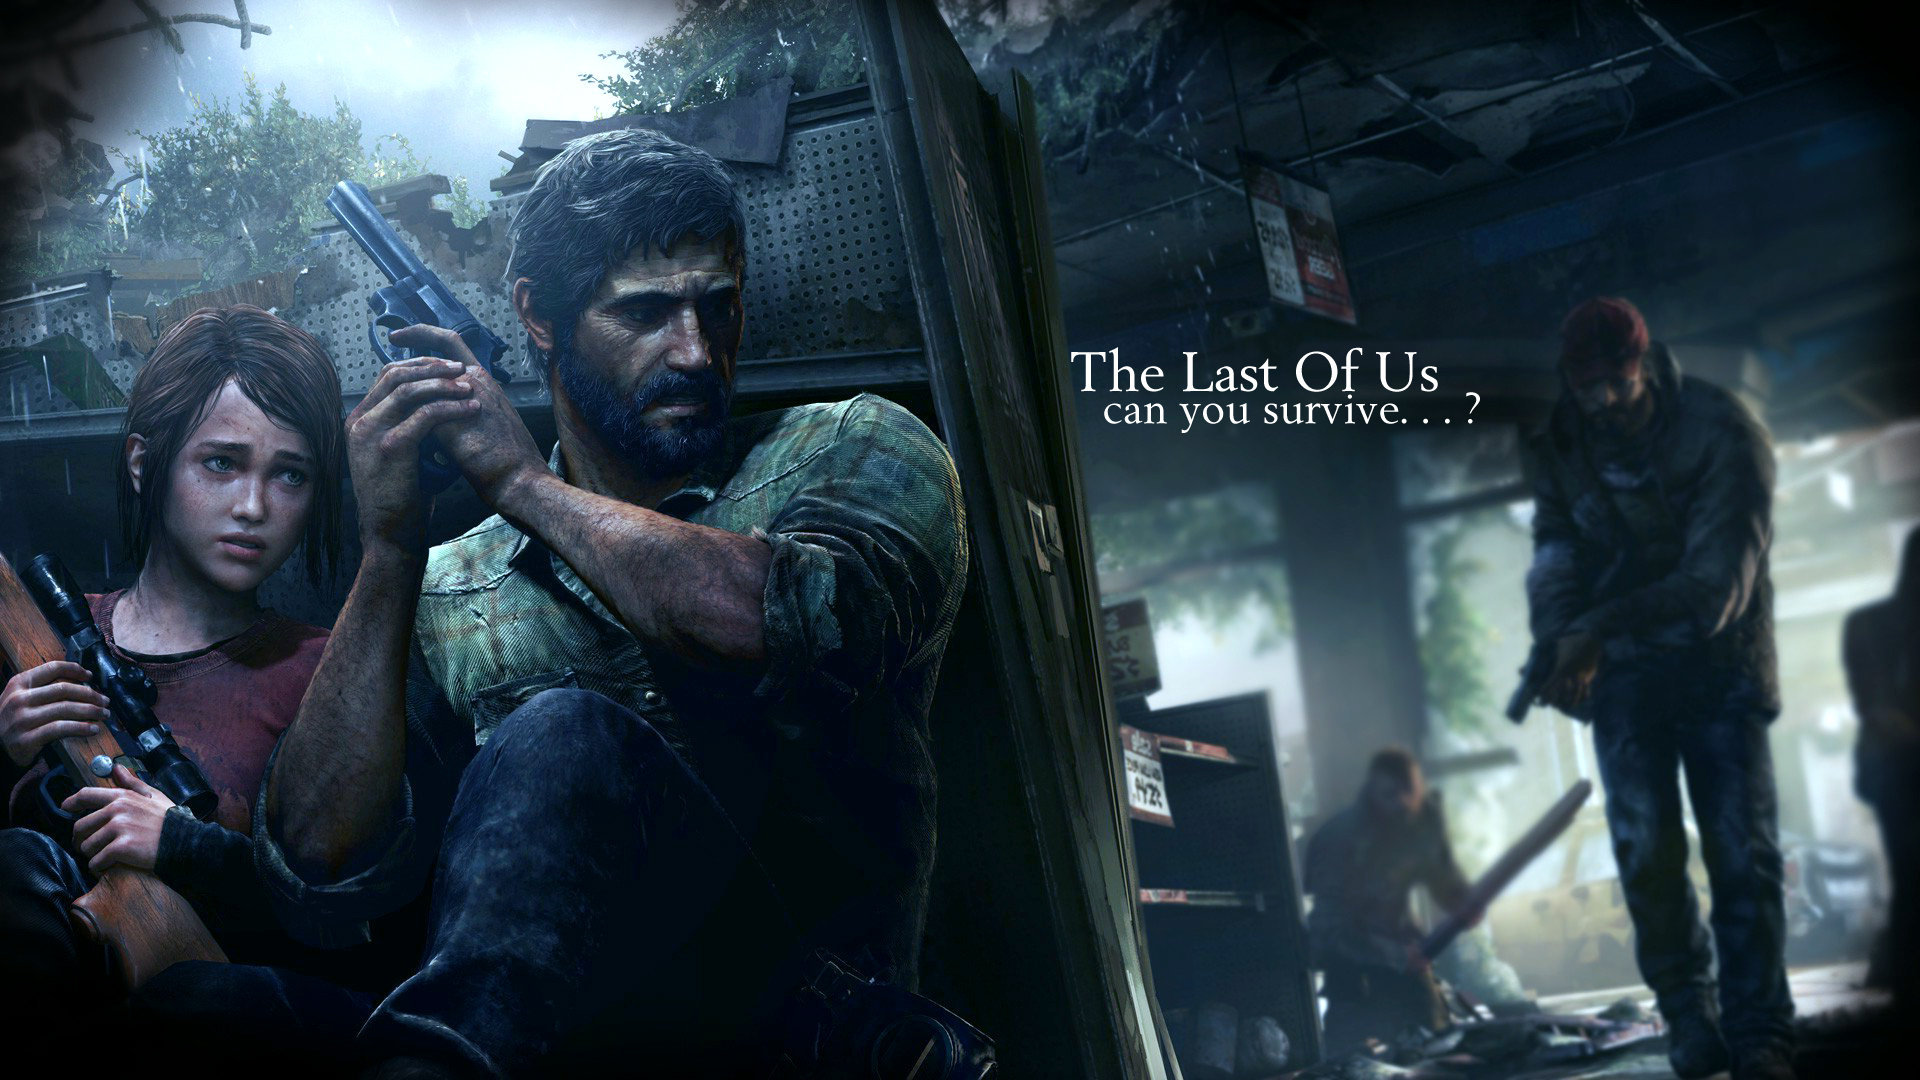 The Last Of Us PS Game Mod DB - The last of us minecraft adventure map download